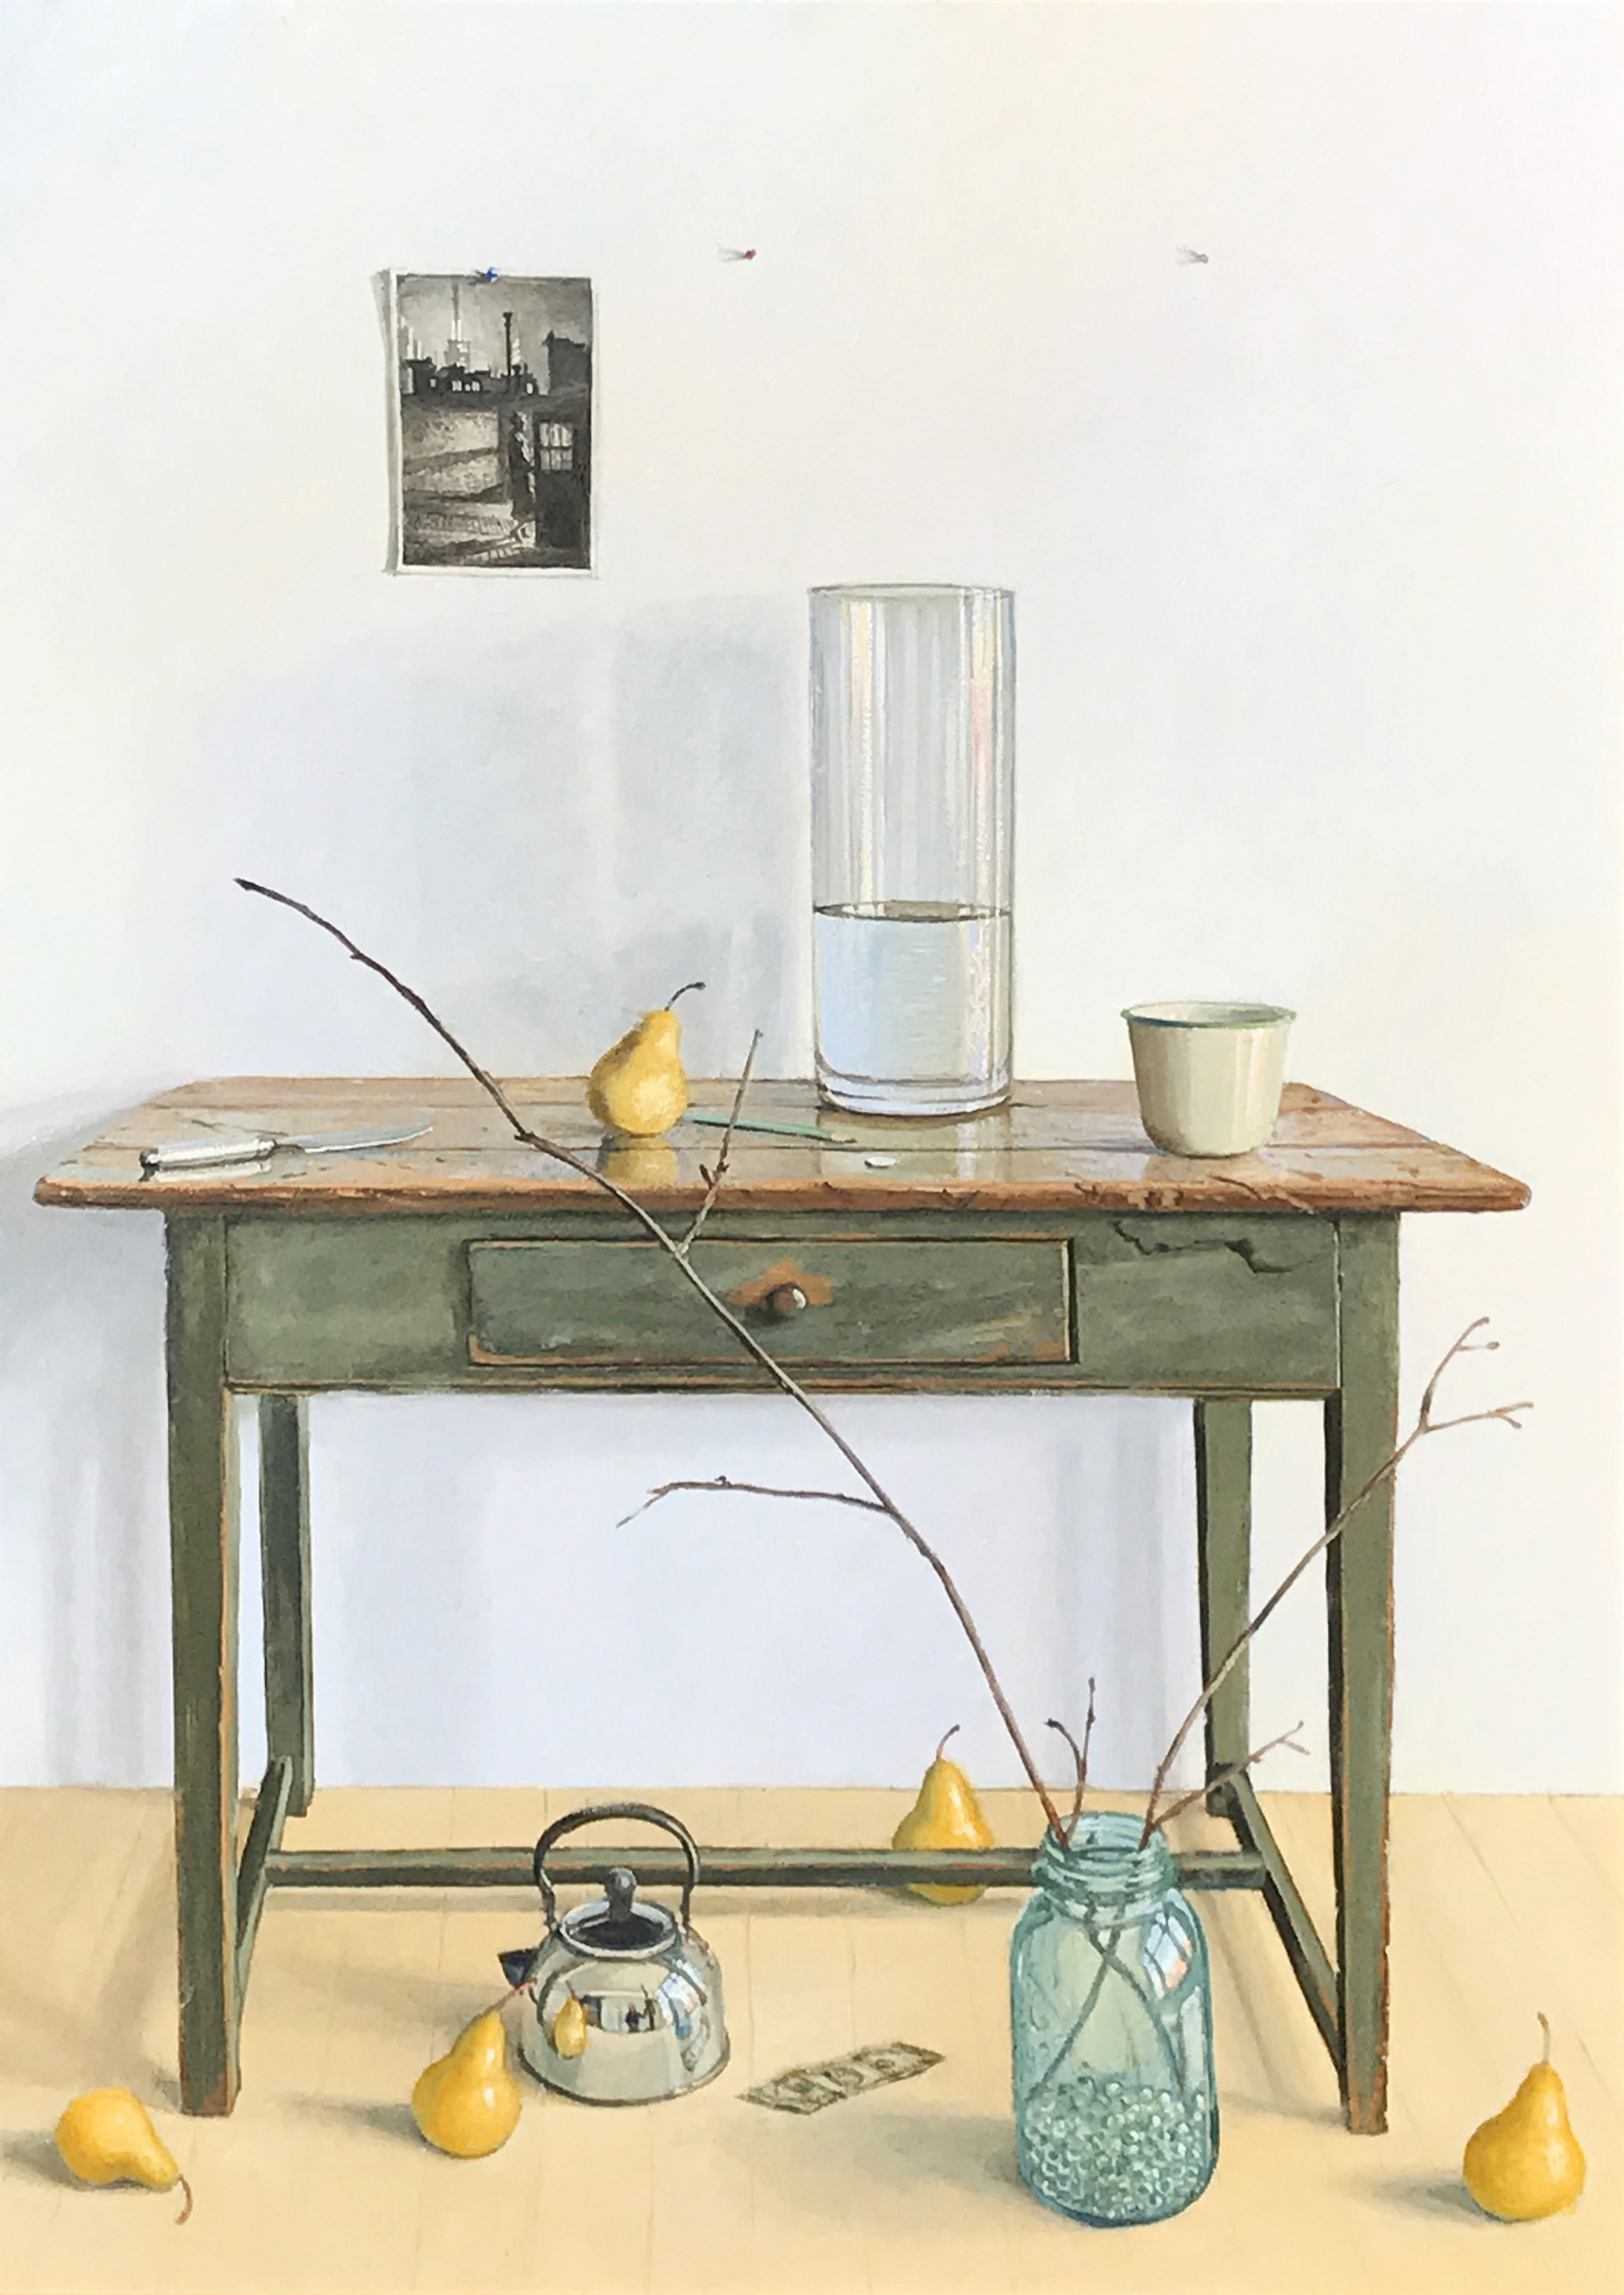 Deconstructed Table